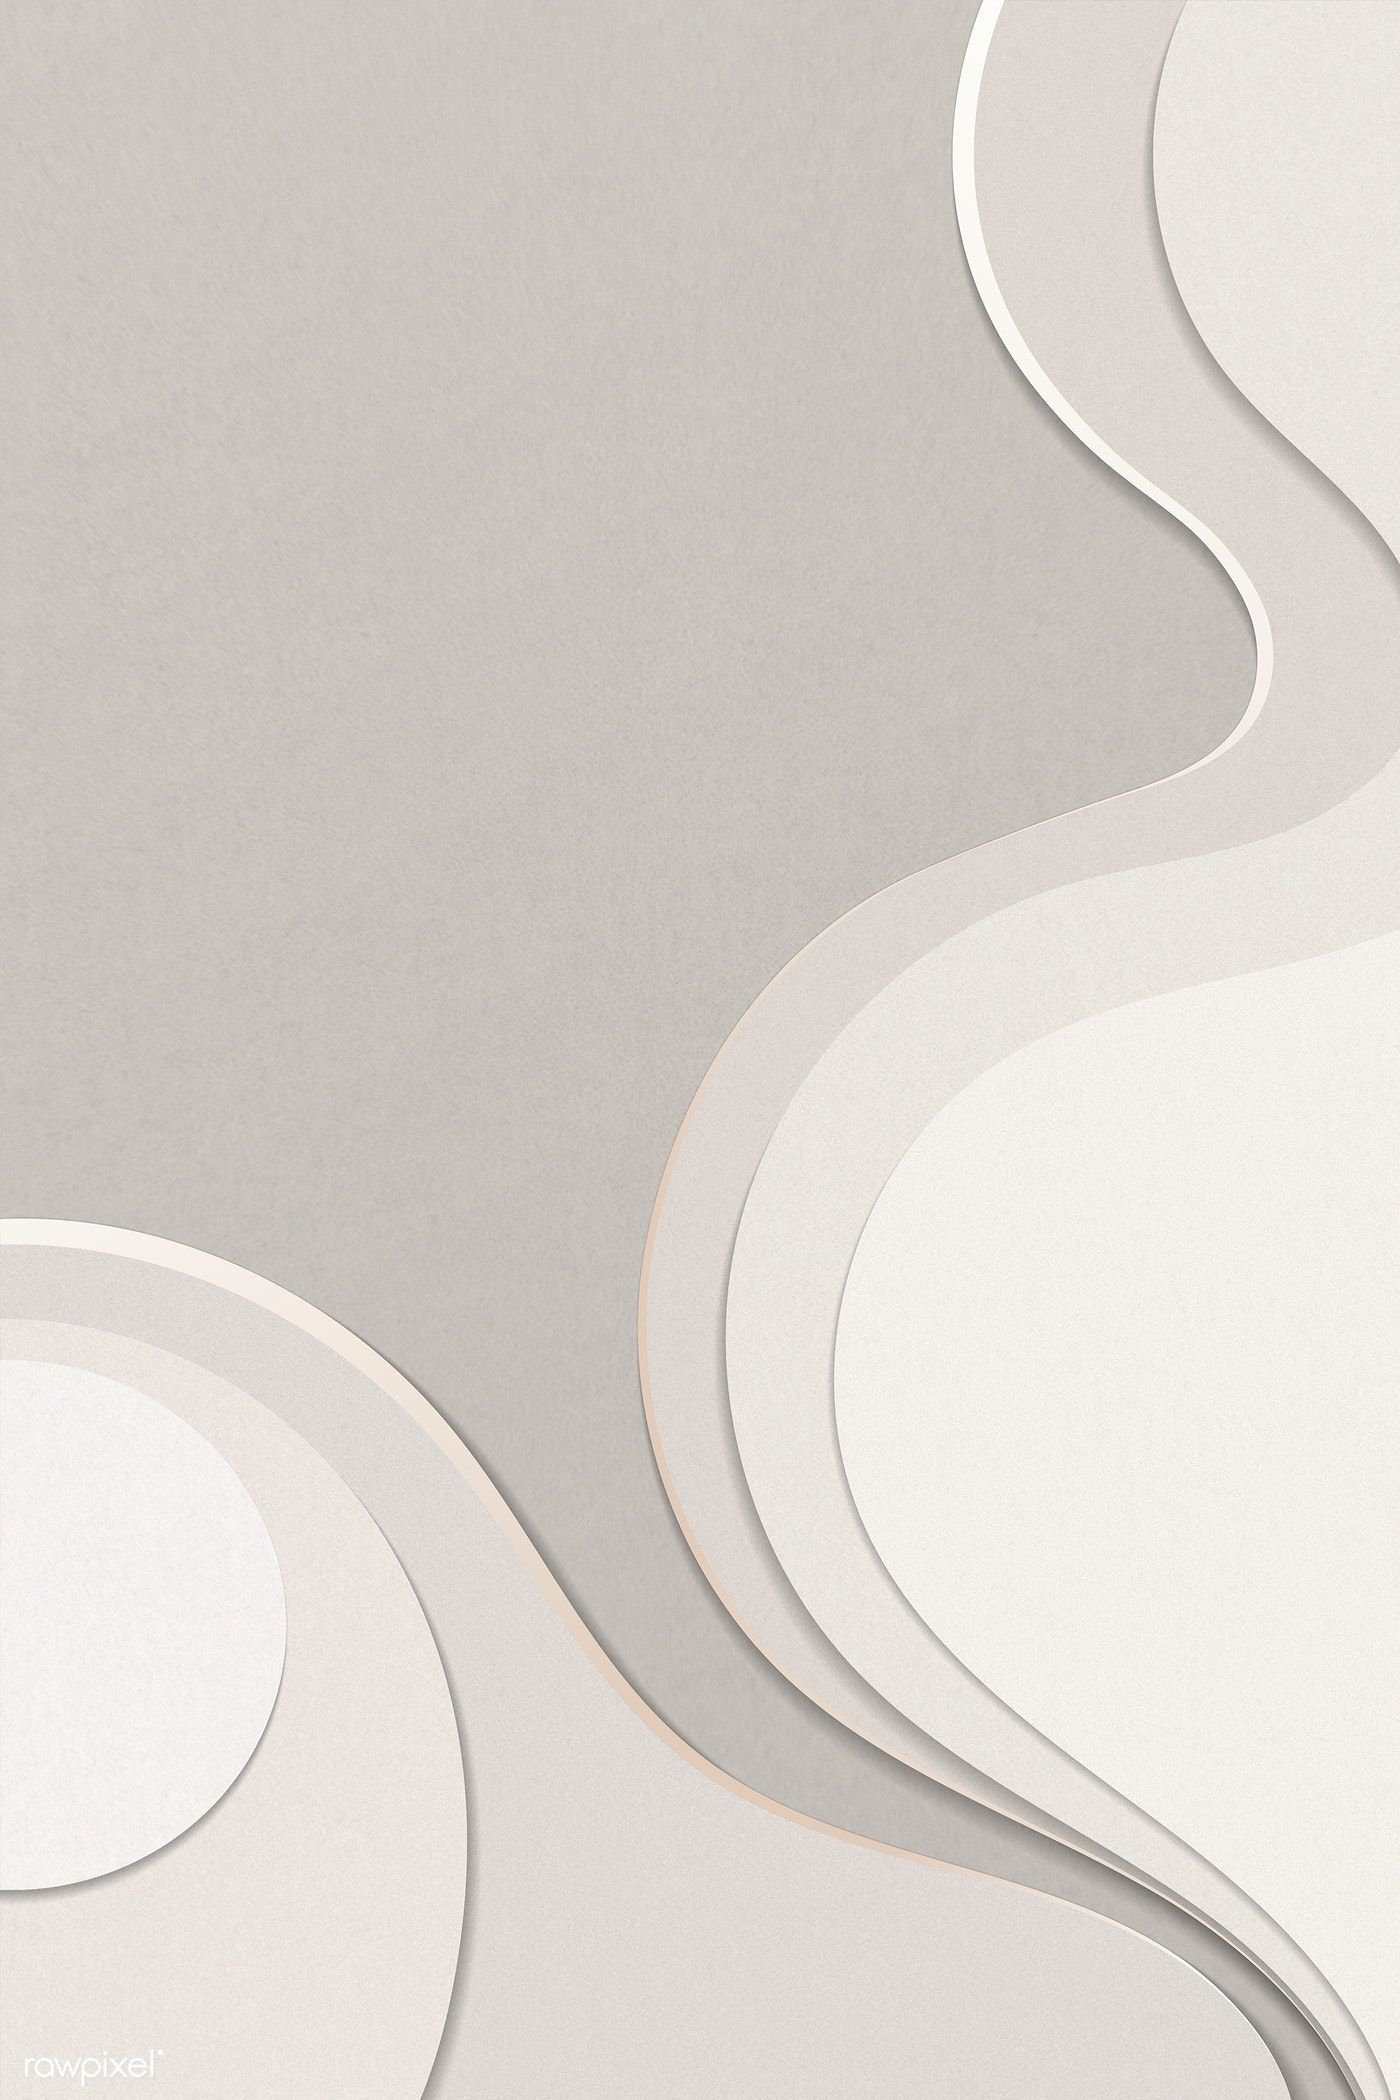 Download premium illustration of Abstract beige curve